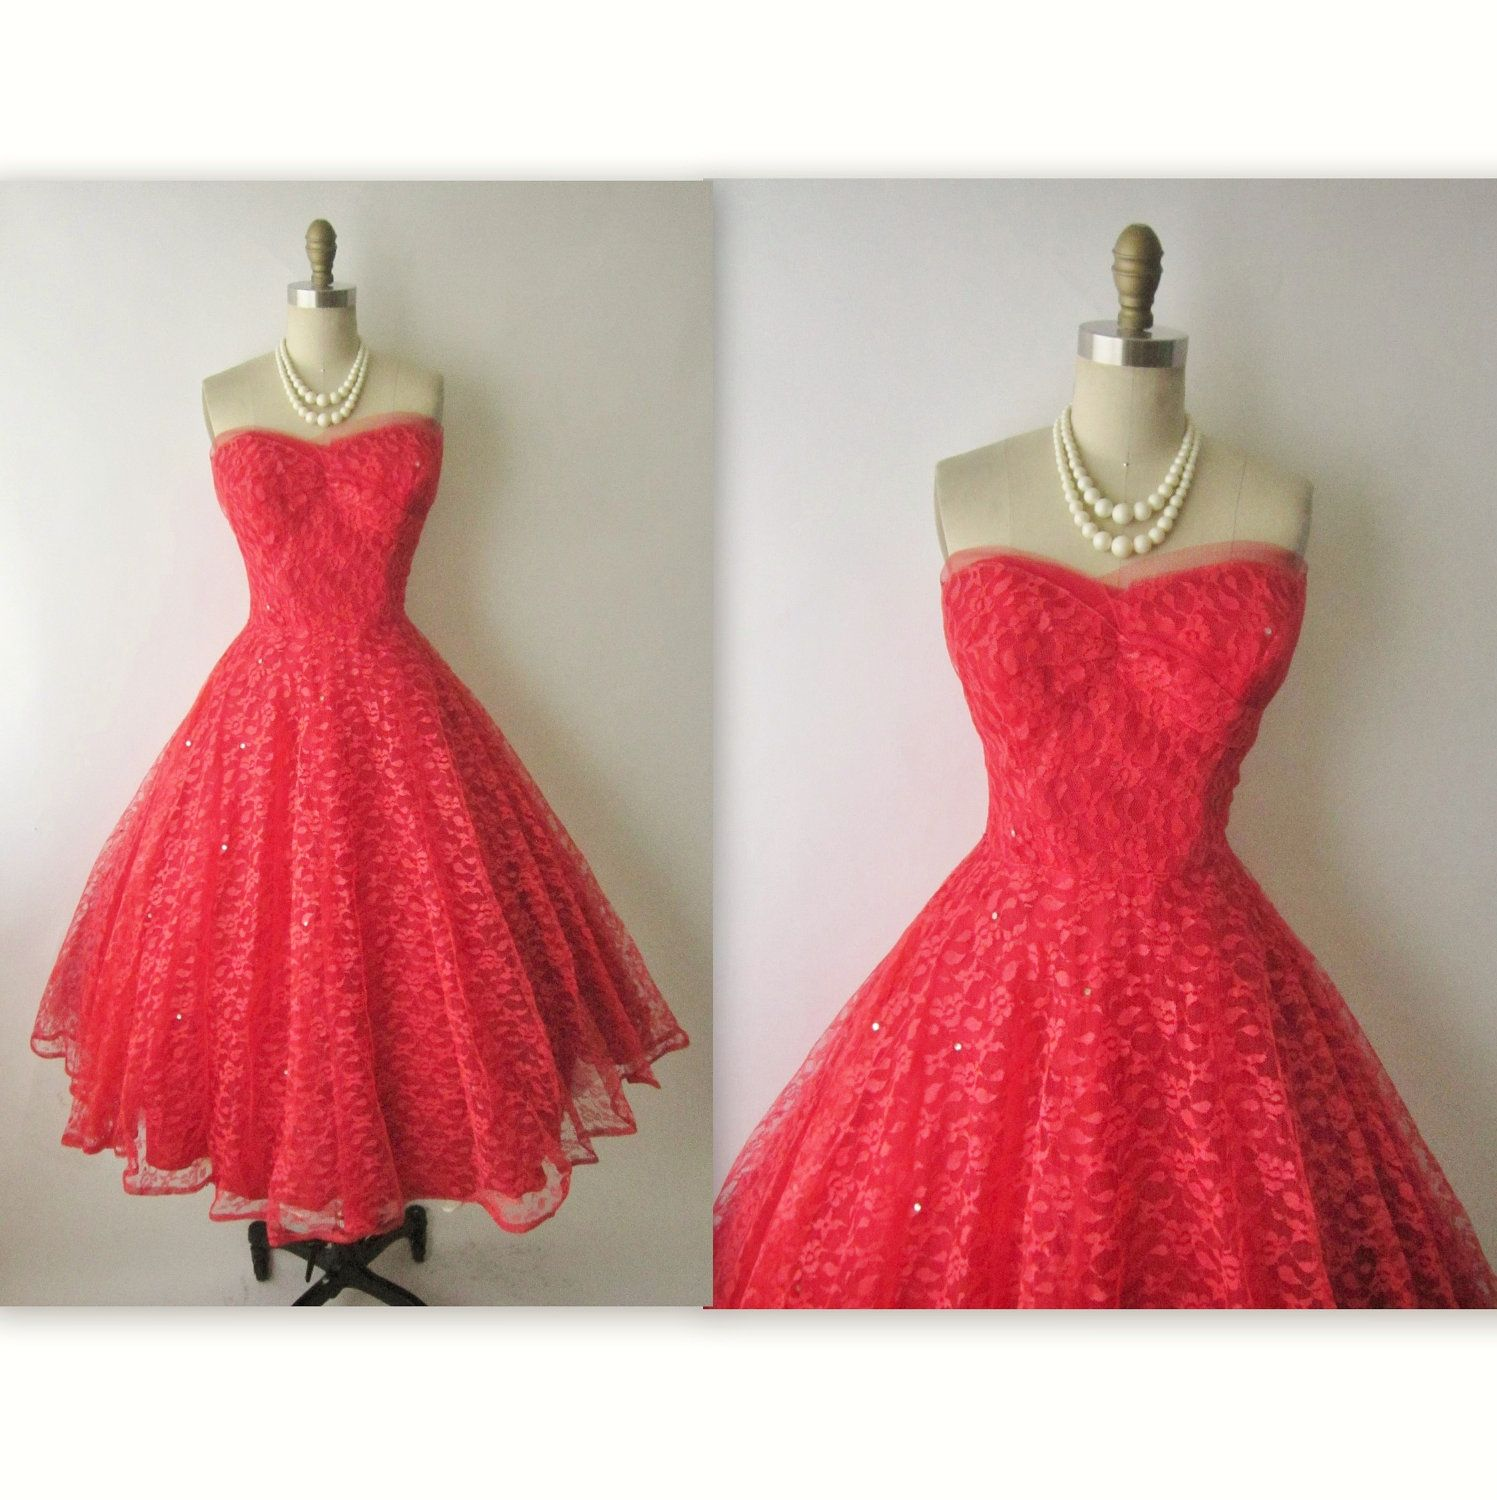 Us prom dress vintage us strapless red tulle wedding party